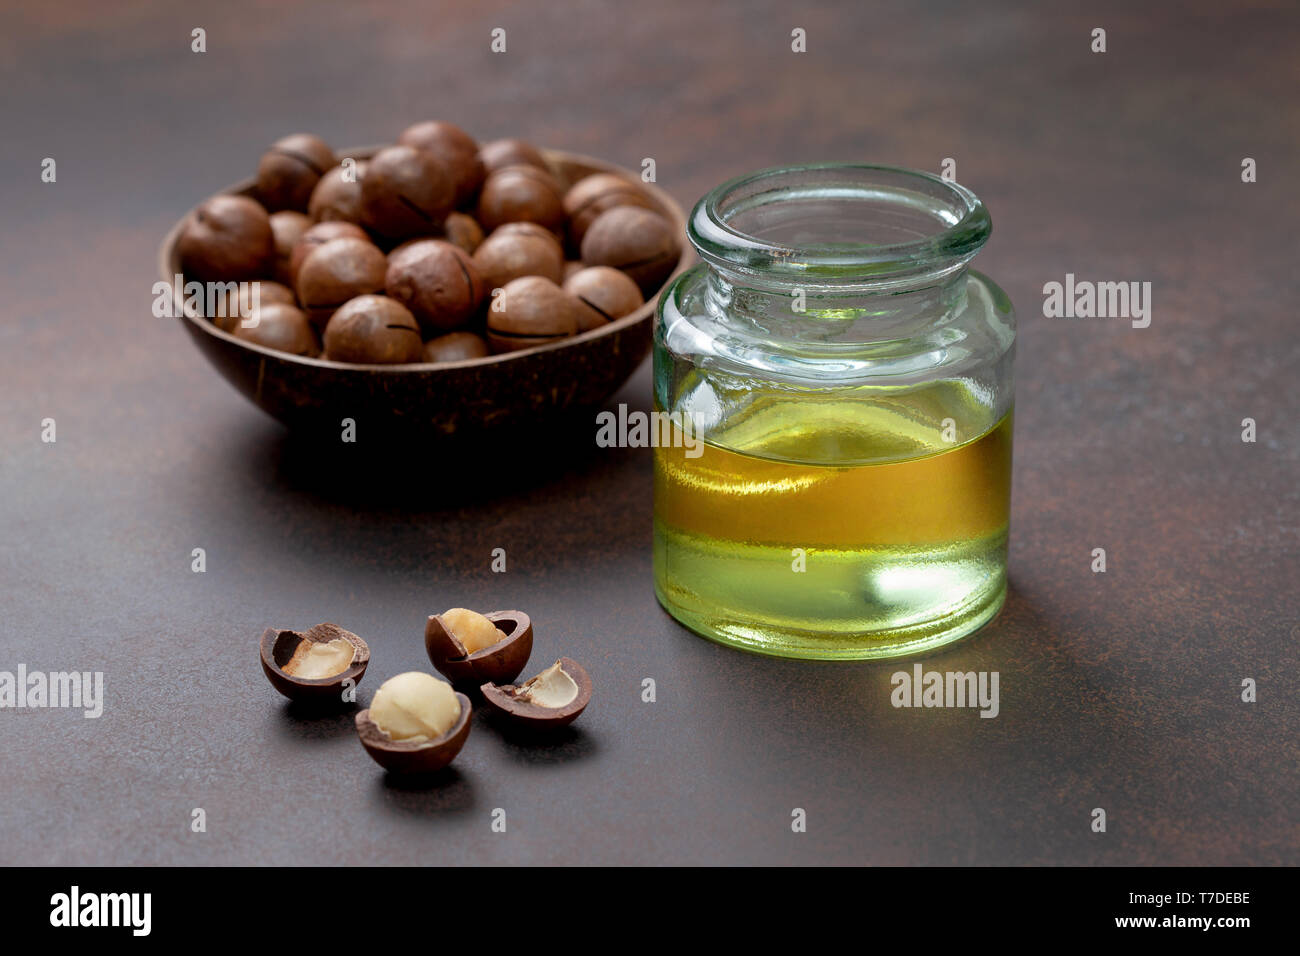 macadamia oil in a glass bottle, macadamia nuts on a brown background Stock Photo